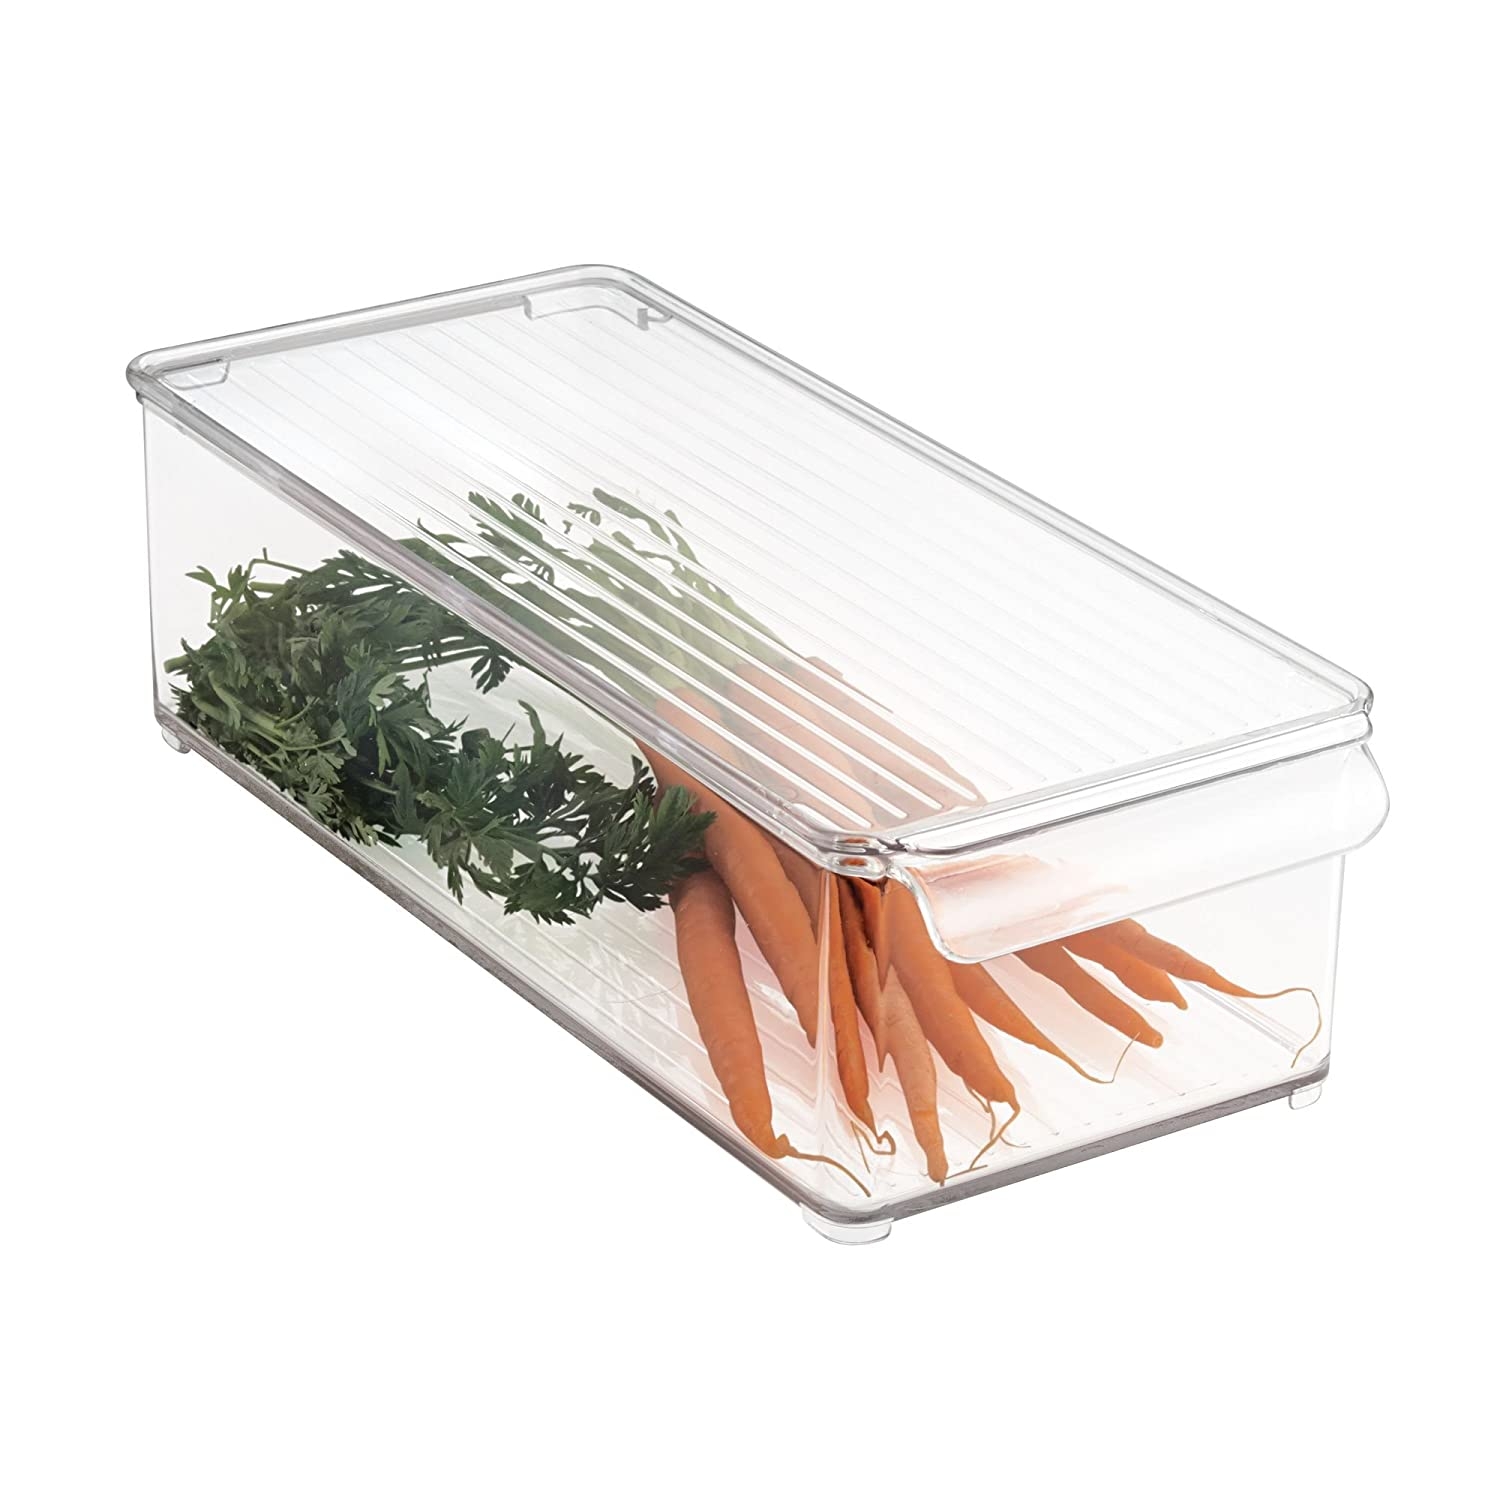 mDesign Plastic Food Storage Container Bin with Lid and Handle for Kitchen, Pantry, Cabinet, Fridge, Freezer - Organizer for Snacks, Produce, Vegetables, Pasta - Clear